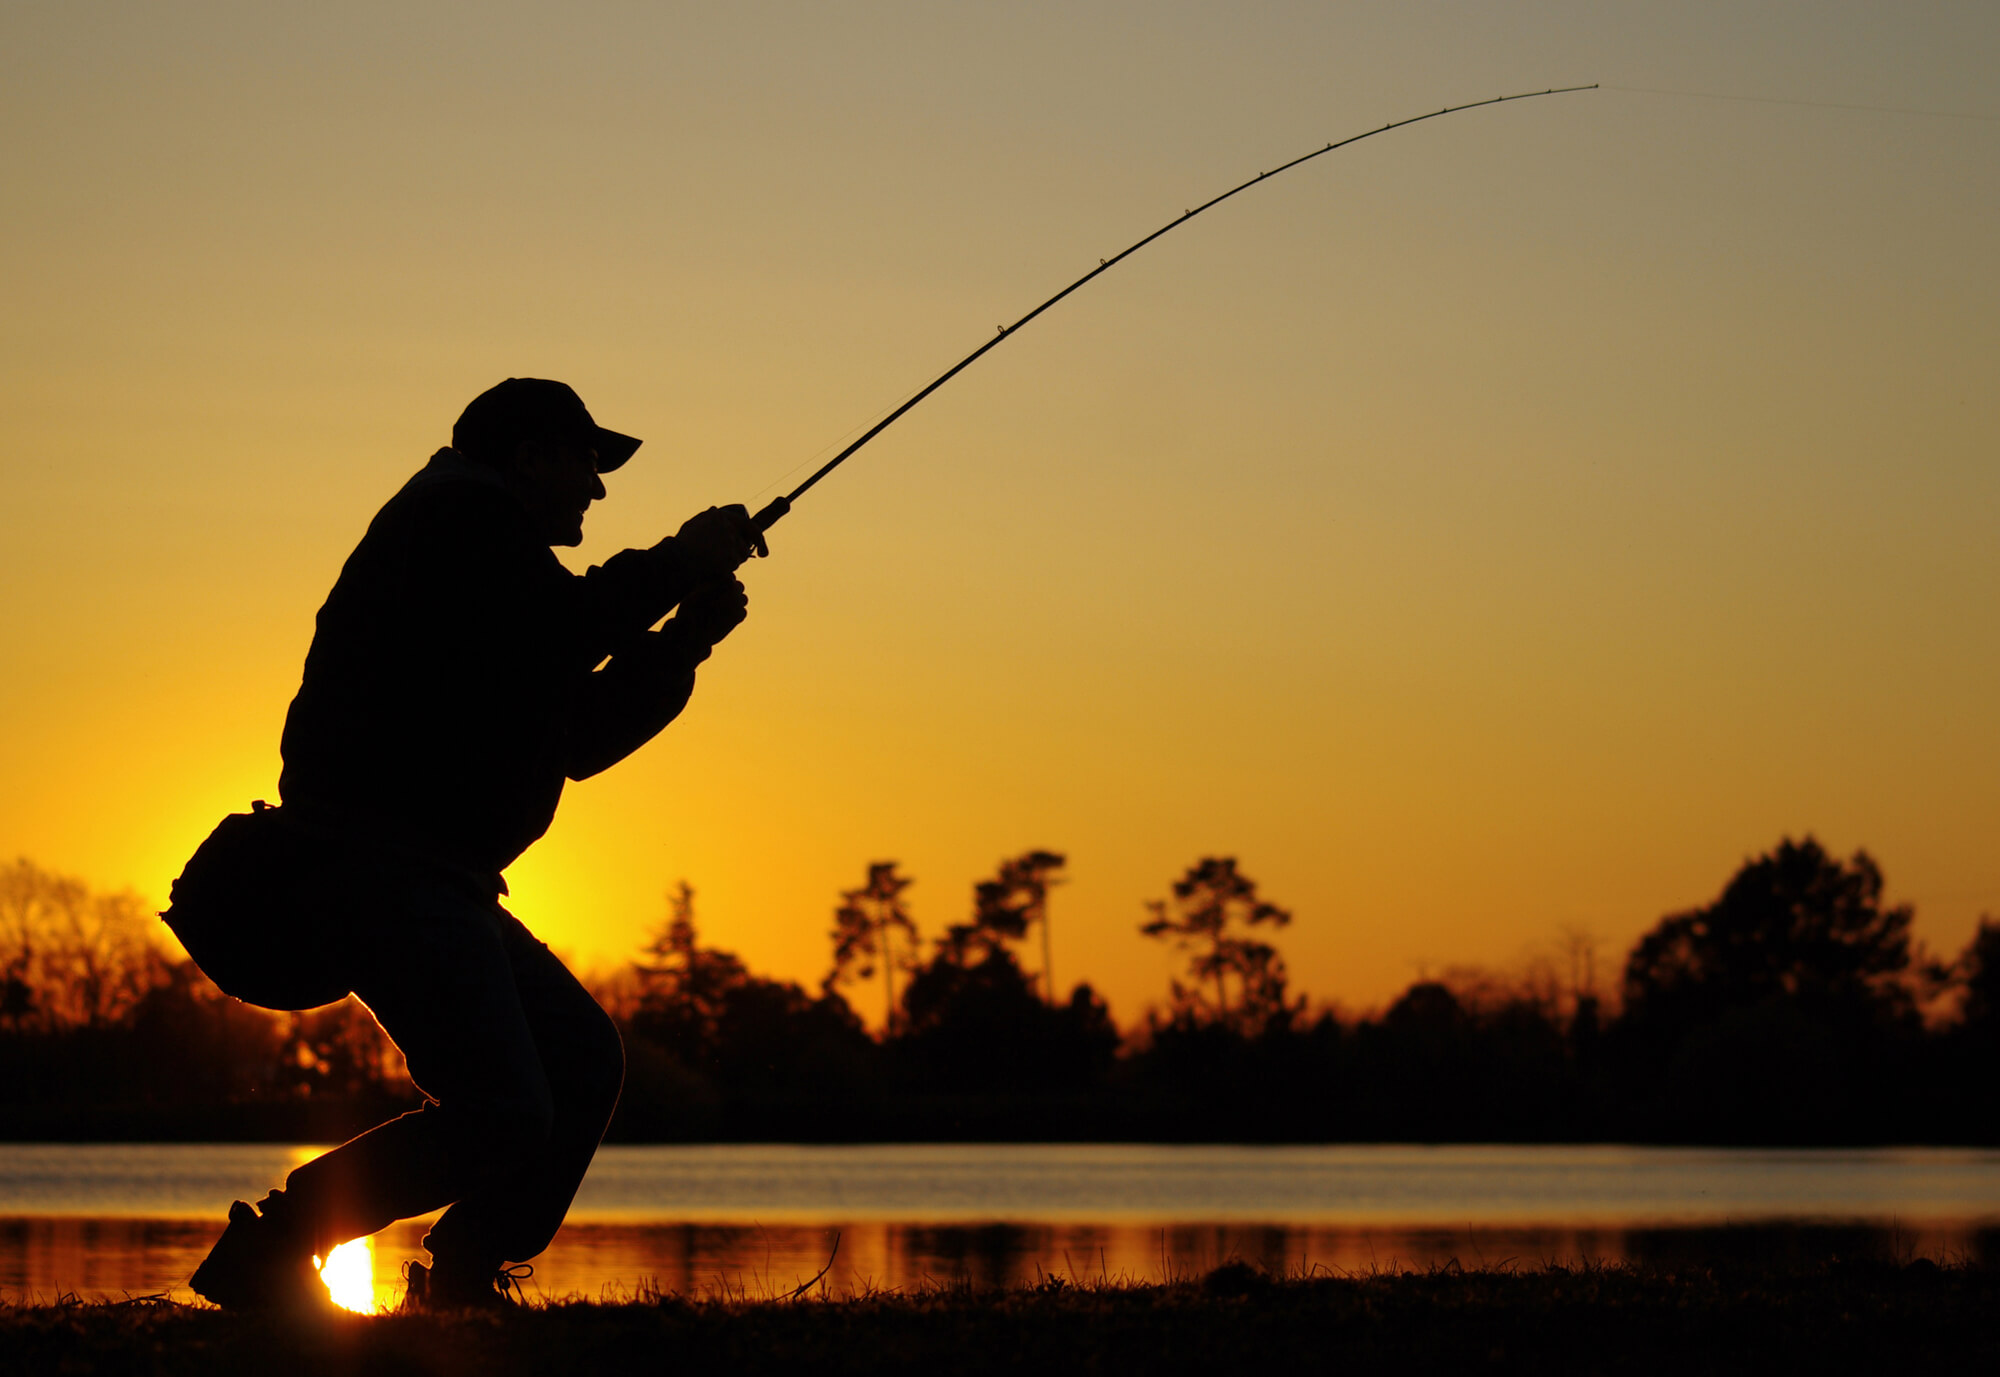 Fishing on river for bass during sunset